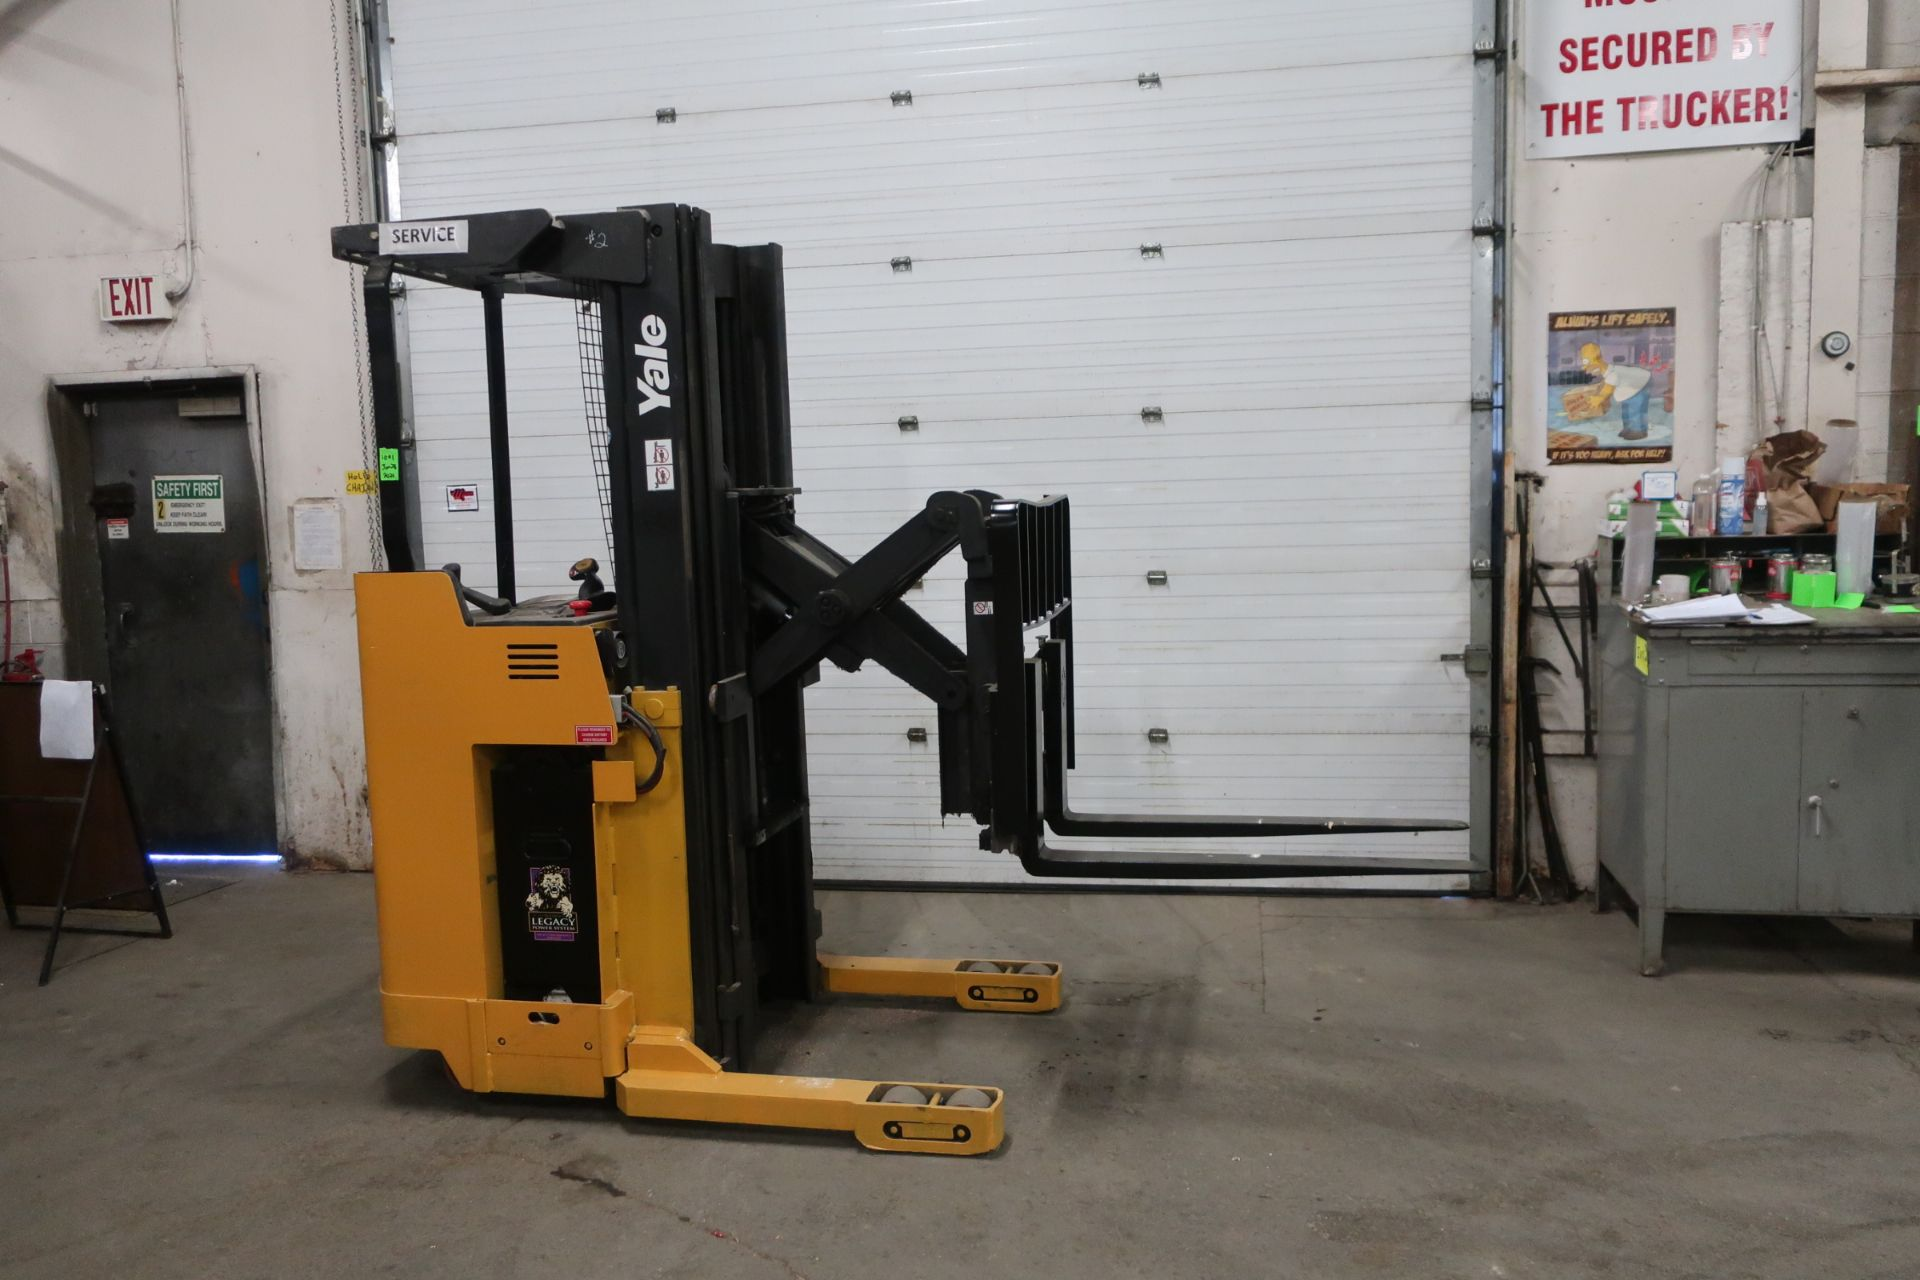 FREE CUSTOMS - 2012 Yale Reach Truck Pallet Lifter REACH TRUCK electric 4000lbswith sideshift 3-